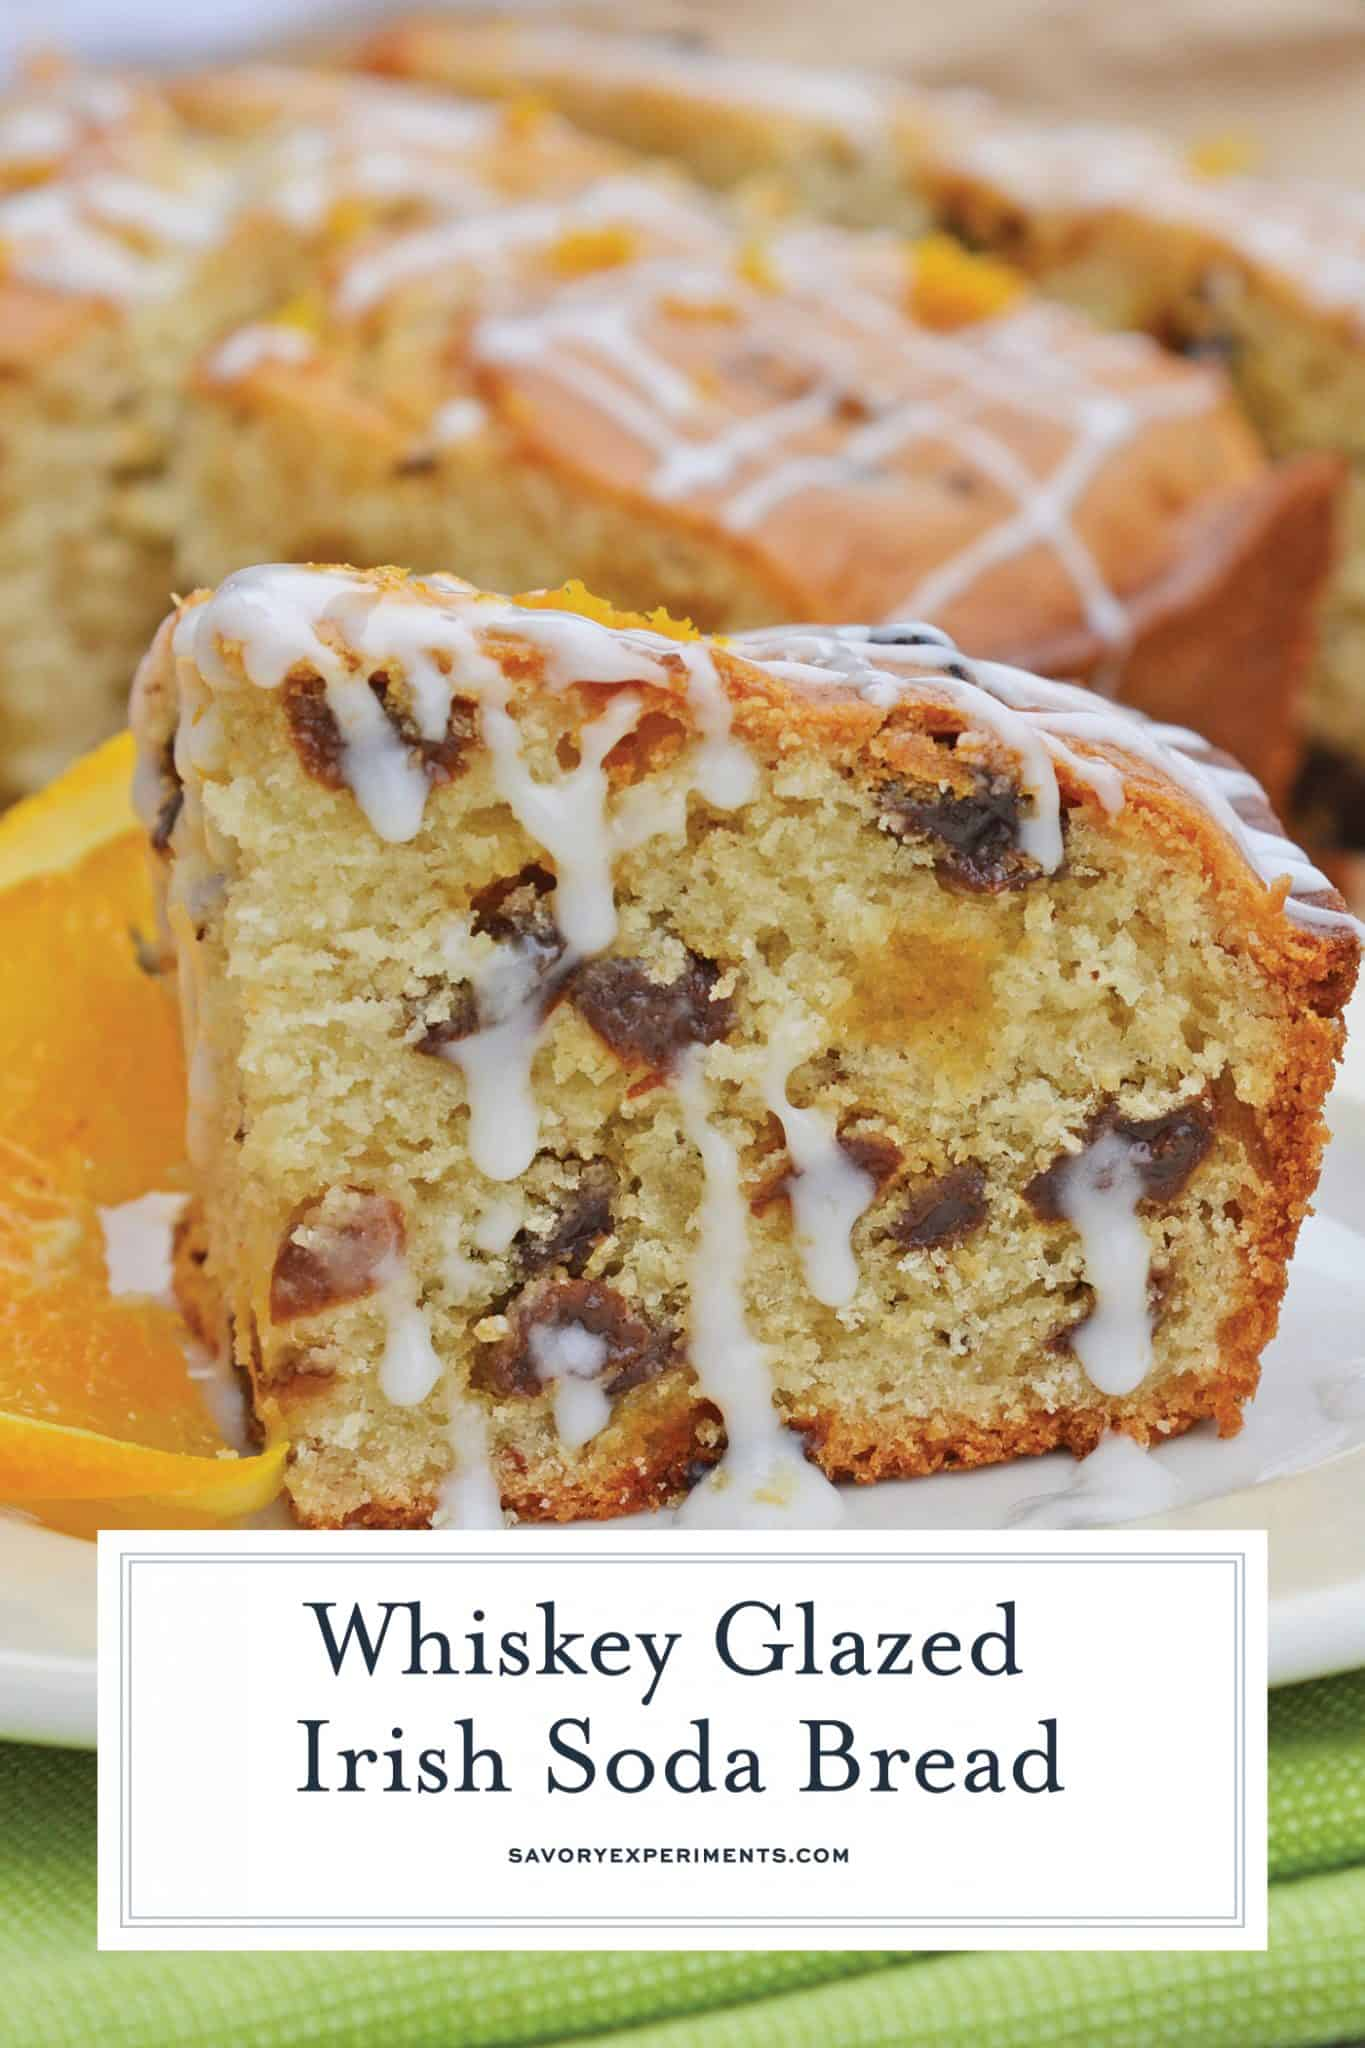 This Irish Soda Bread with Whiskey Glaze recipe is Irish food at its best! It consists of whiskey, caraway seeds, currants, and fresh orange juice and zest! #irishsodabreadrecipe #irishsodabreadhistory www.savoryexperiments.com